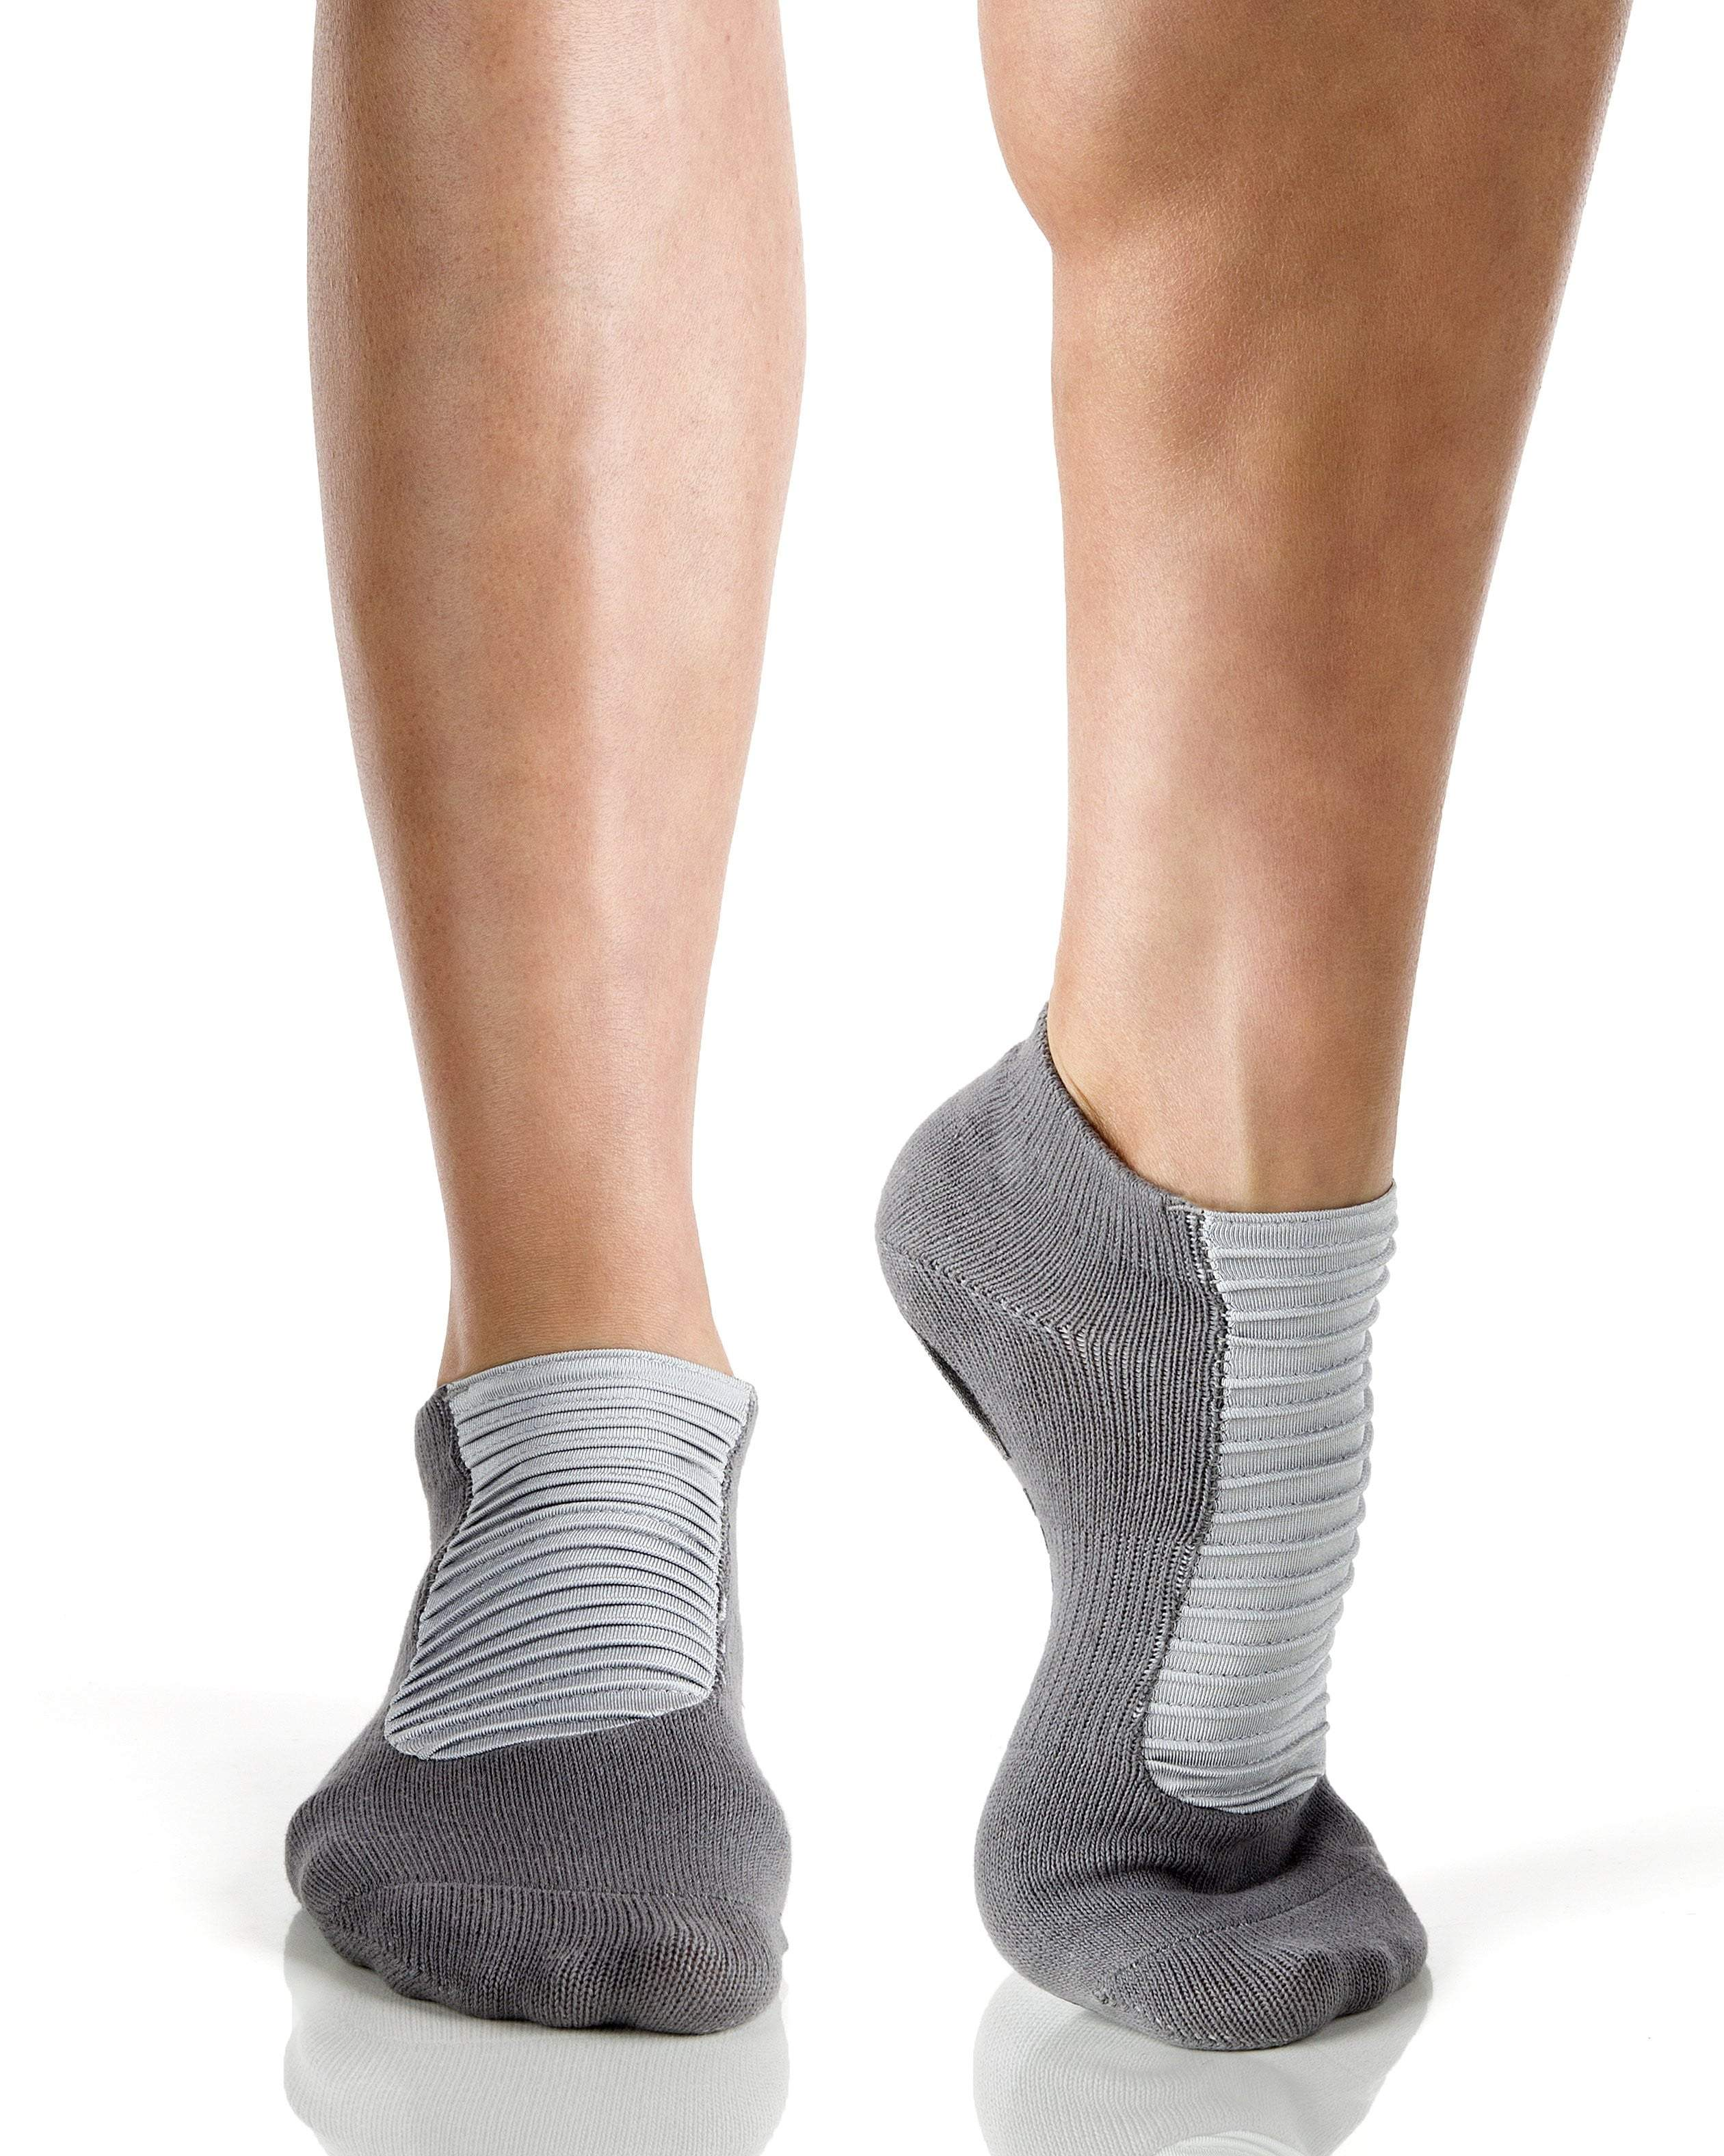 MOTO Closed Toe Grip Socks, Grey